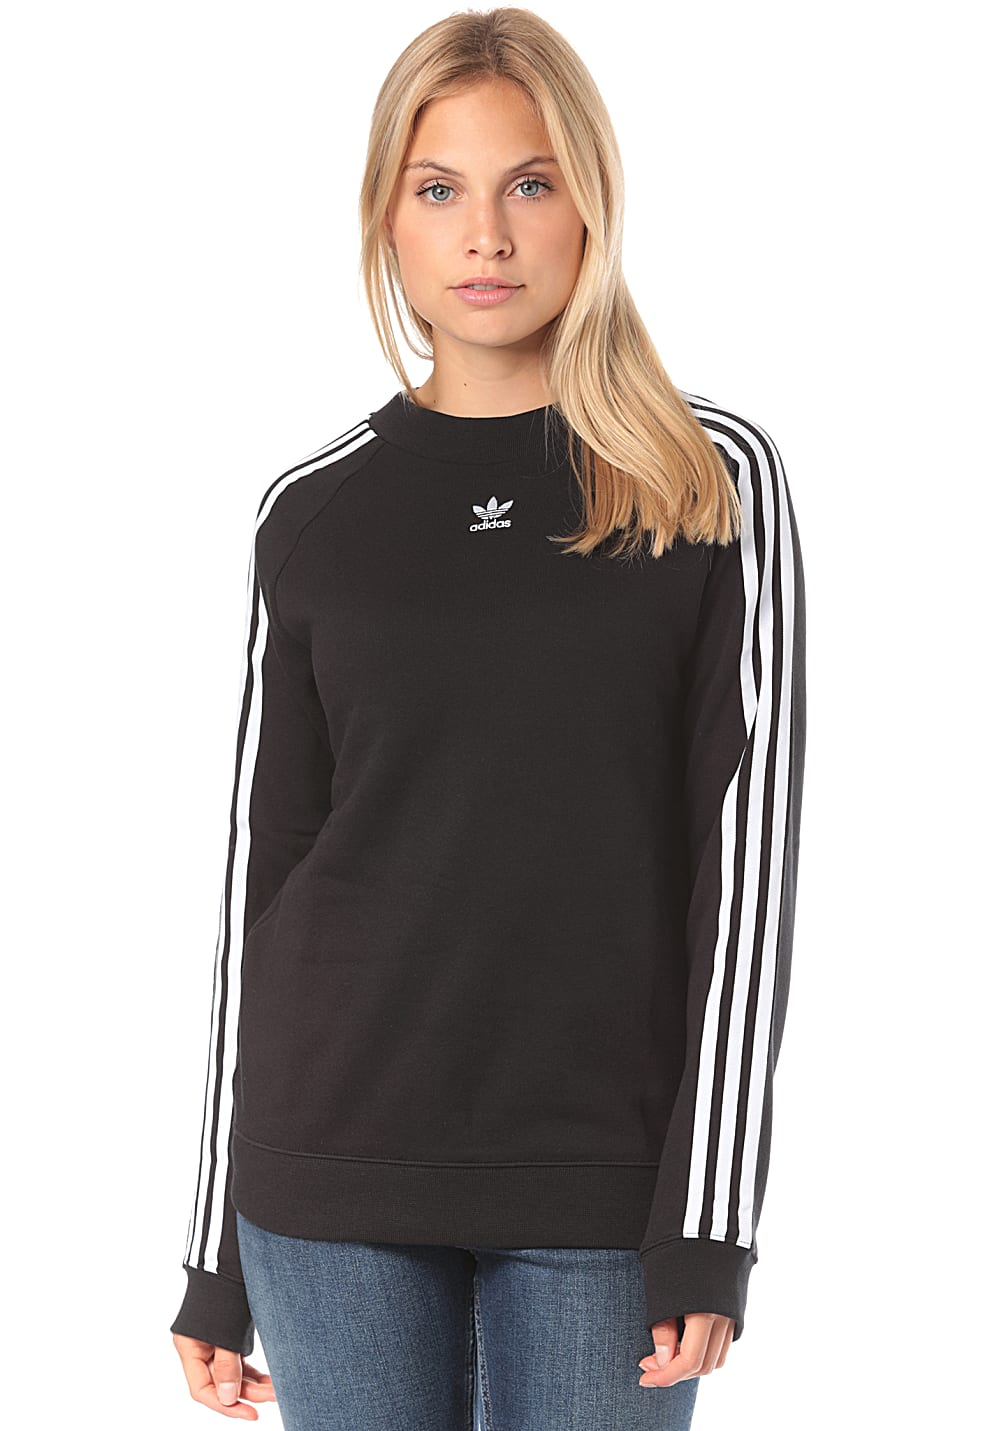 Adidas Sweatshirt Schwarz Herren Adidas Originals Trefoil Crew Sweatshirt For Women Black